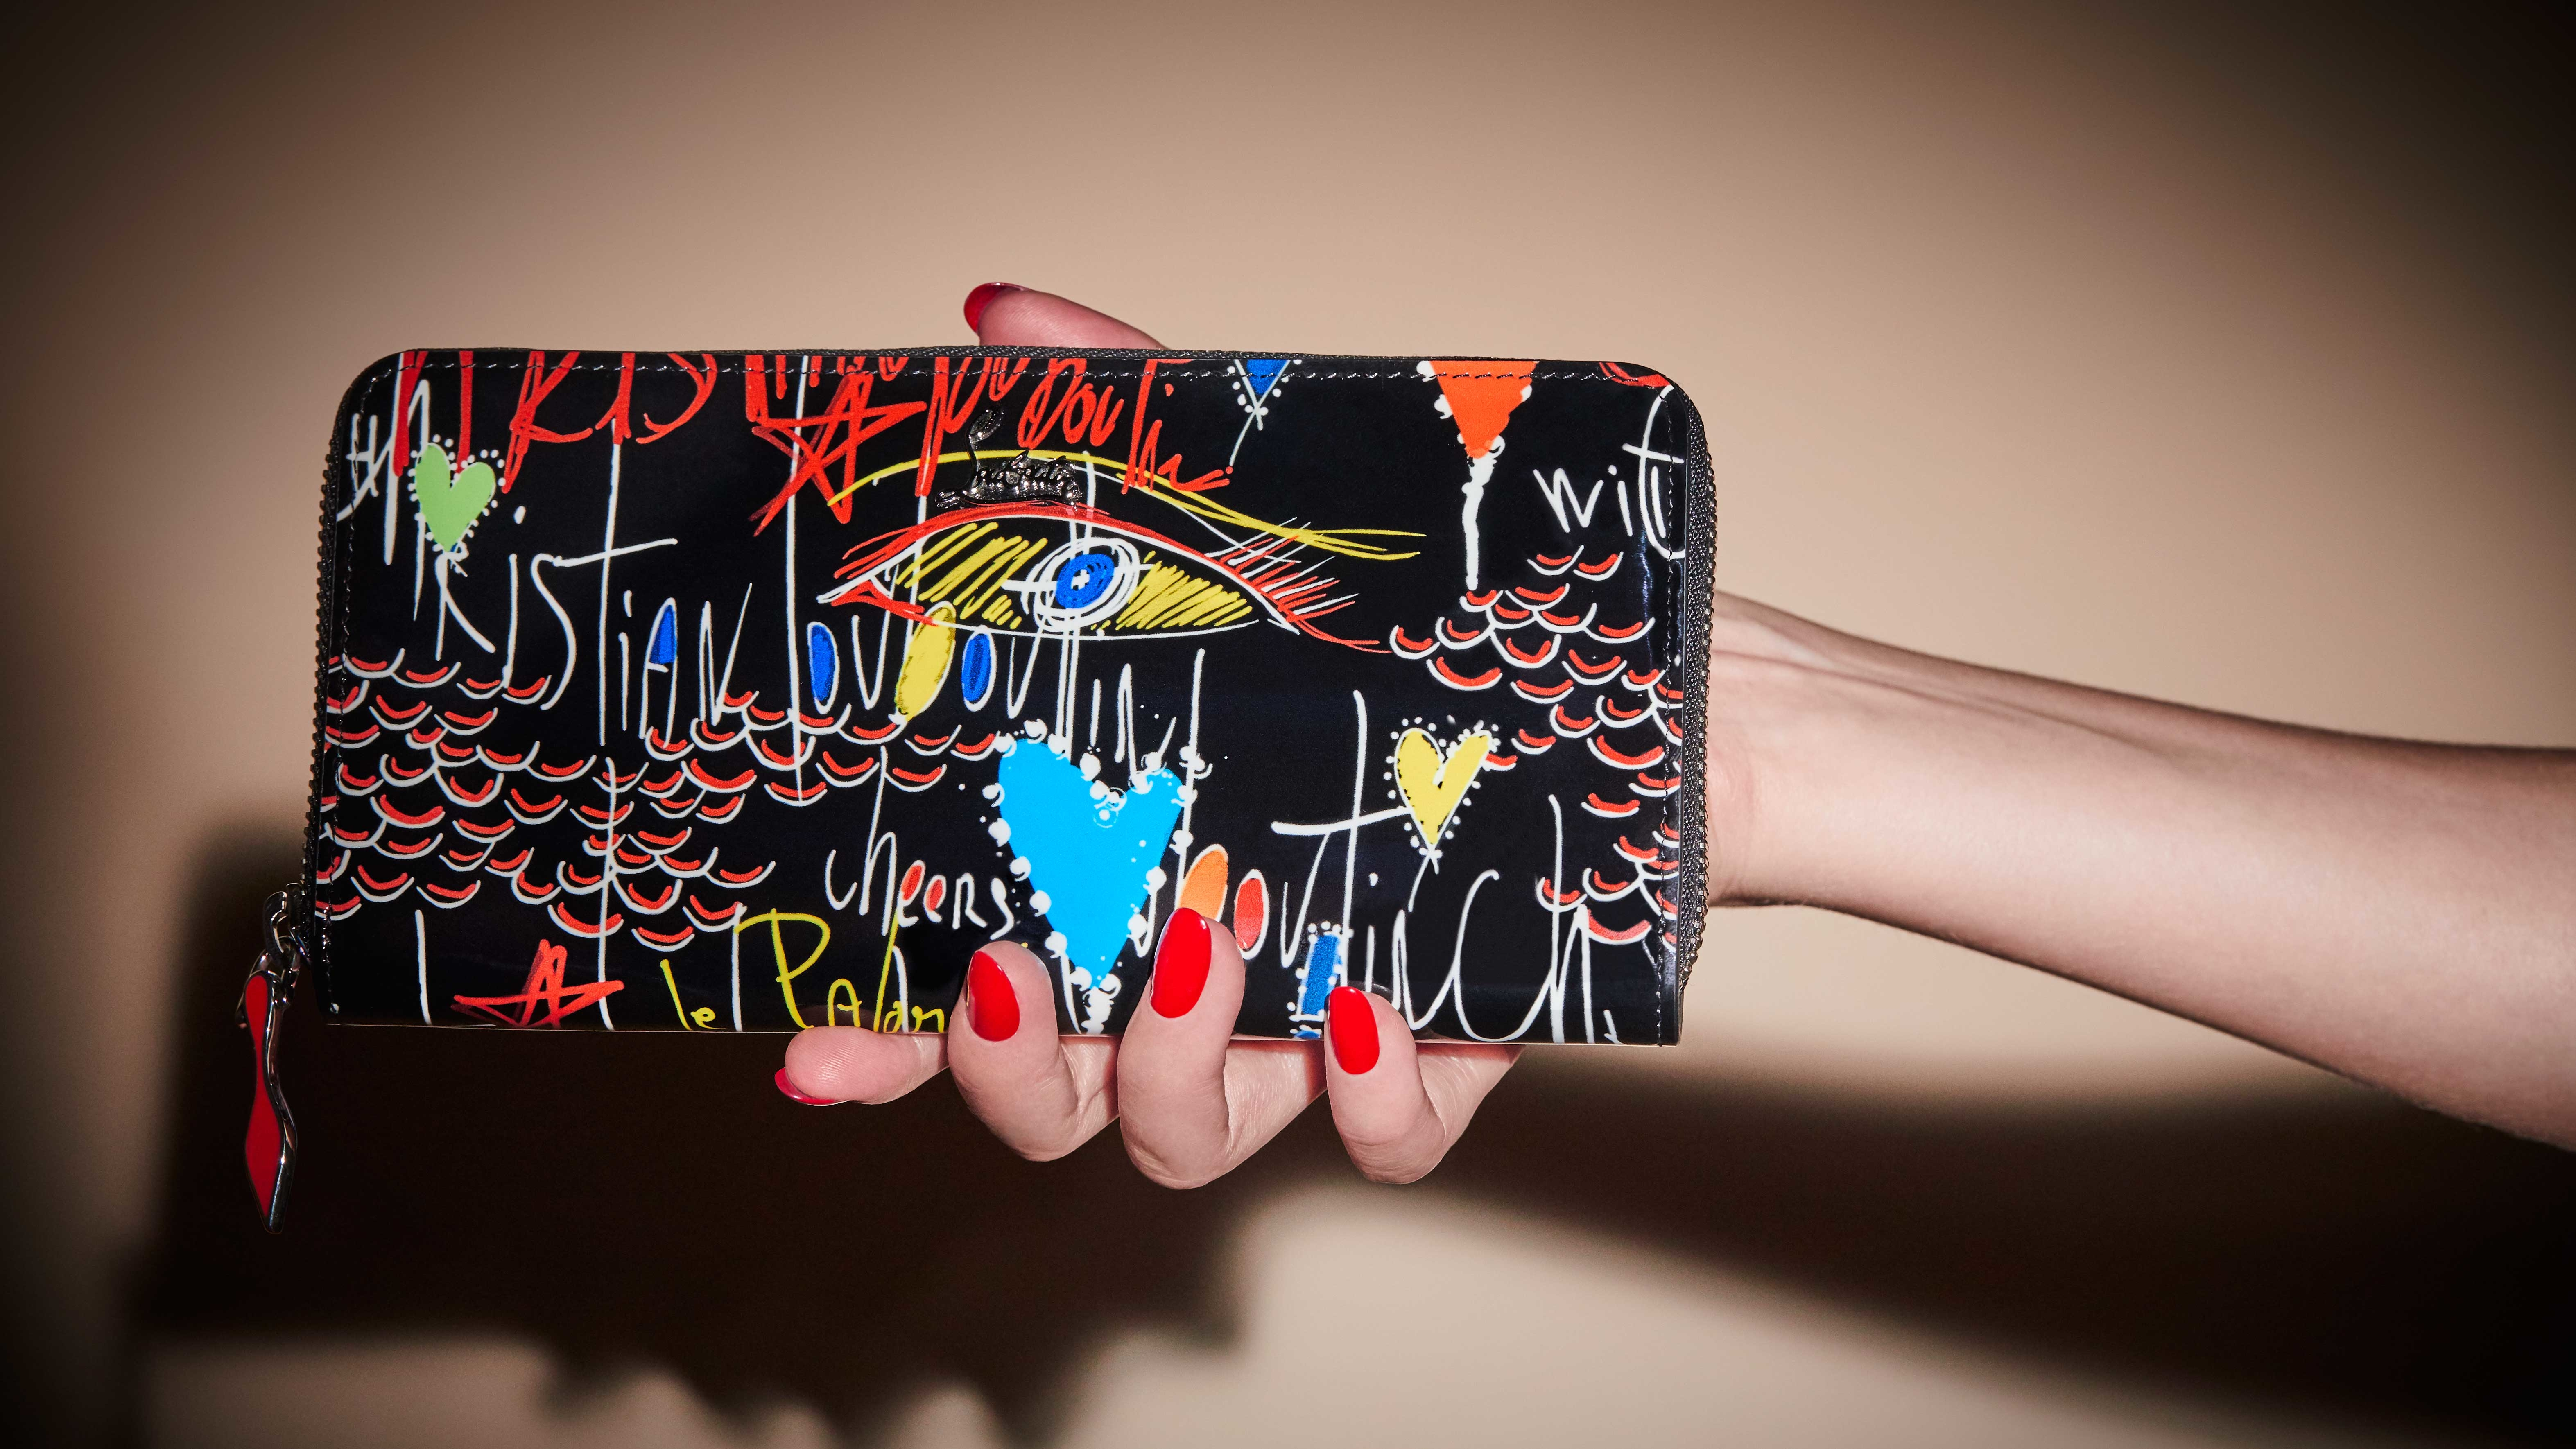 VIDEO: Christian Louboutin Reveals Loubitag Spring/Summer 2018 Collection